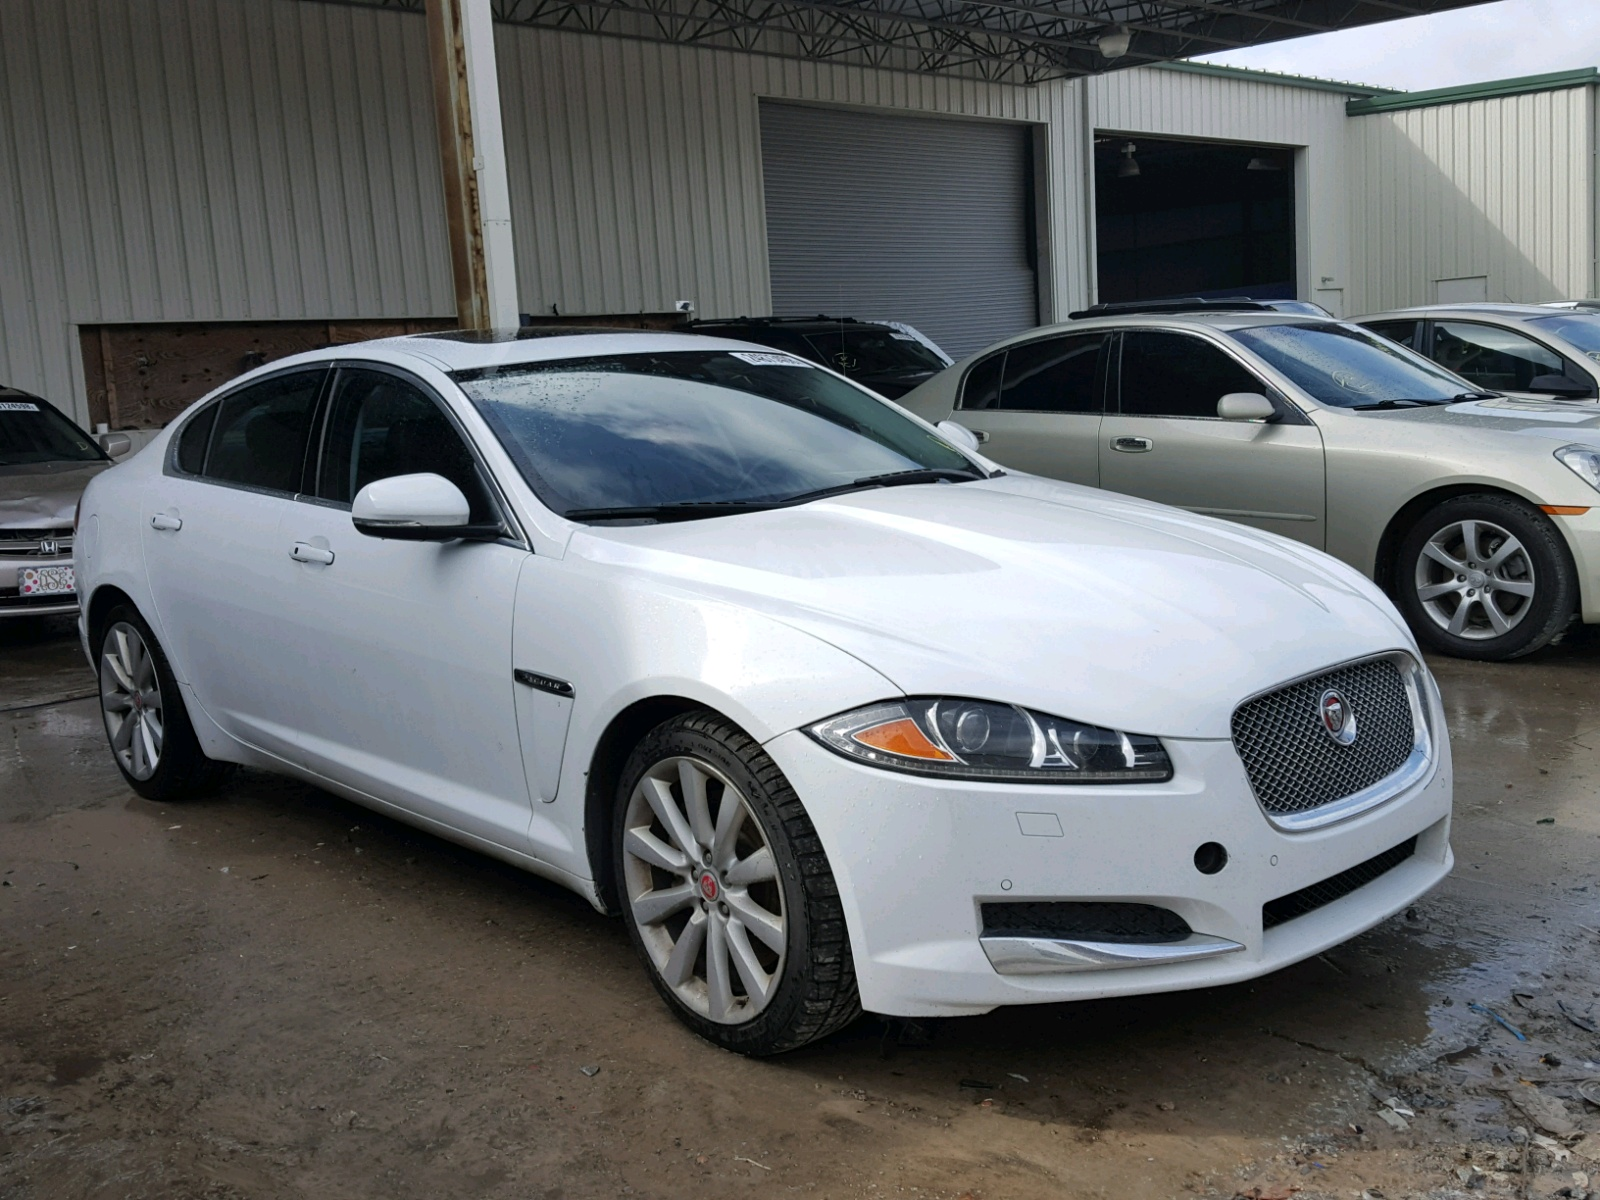 SAJWA0EX6E8U21440 - 2014 JAGUAR XF 3.0L Left View